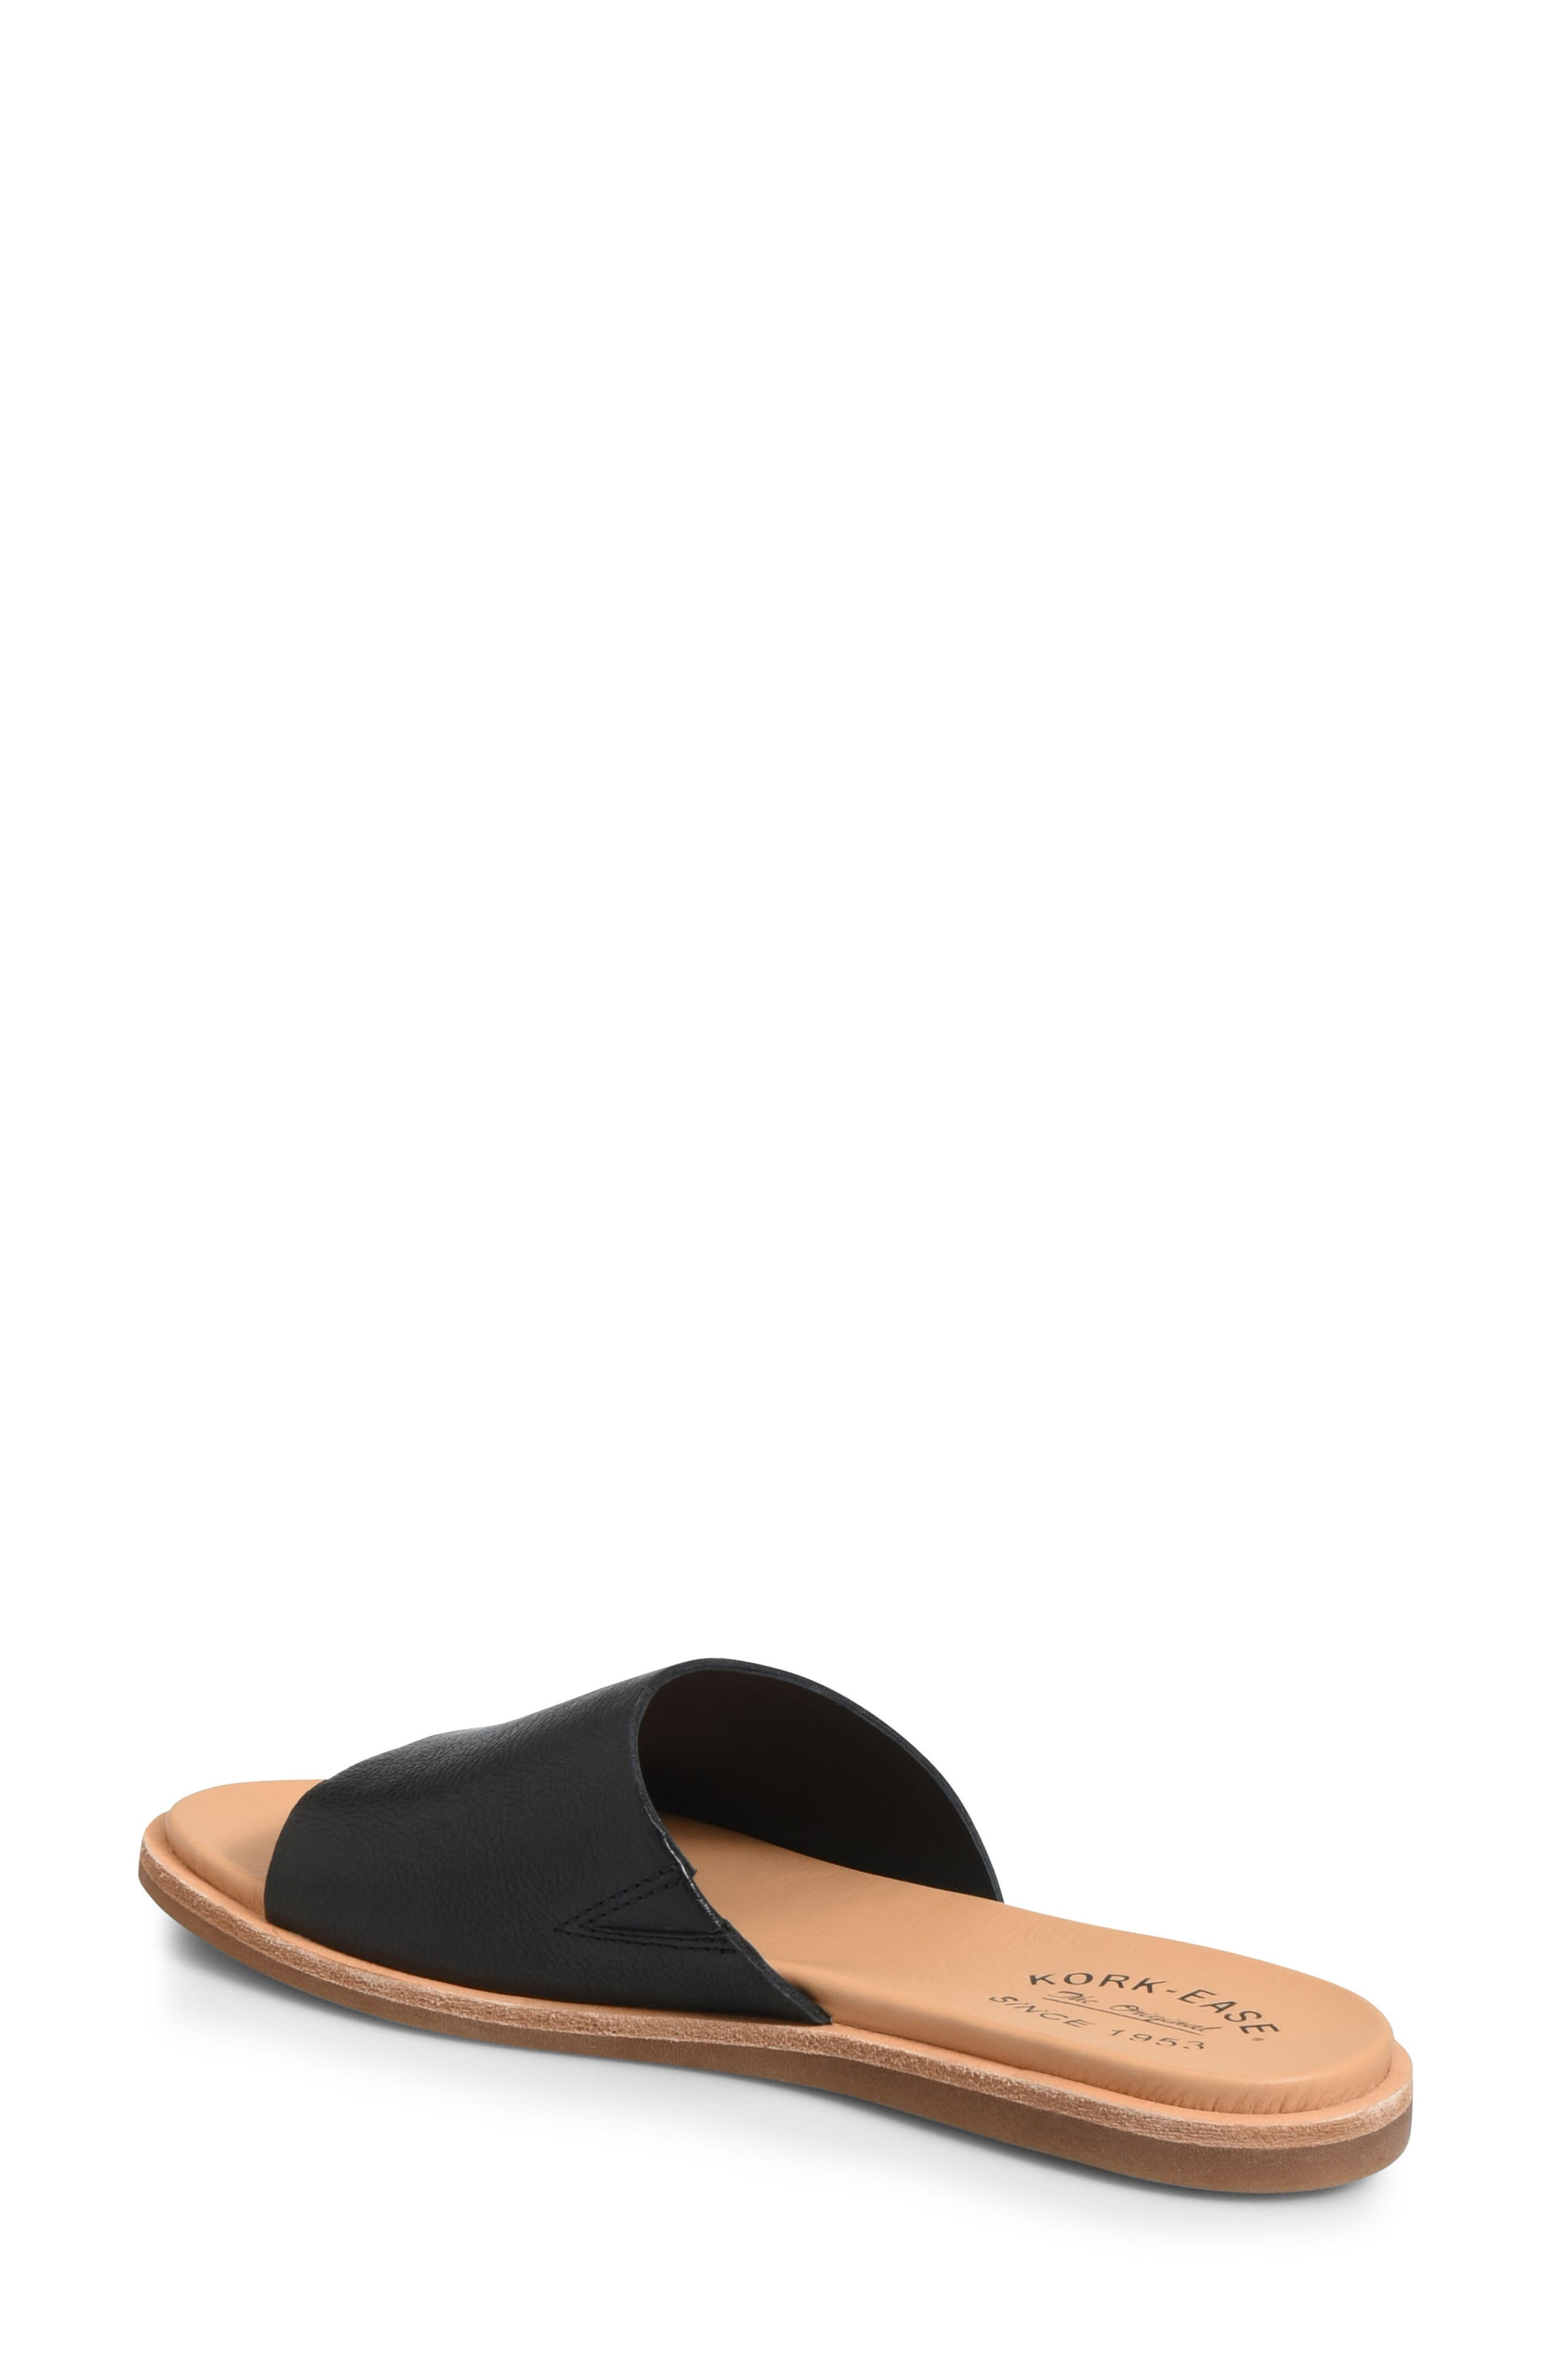 Gila Slide Sandal,                             Alternate thumbnail 2, color,                             BLACK LEATHER